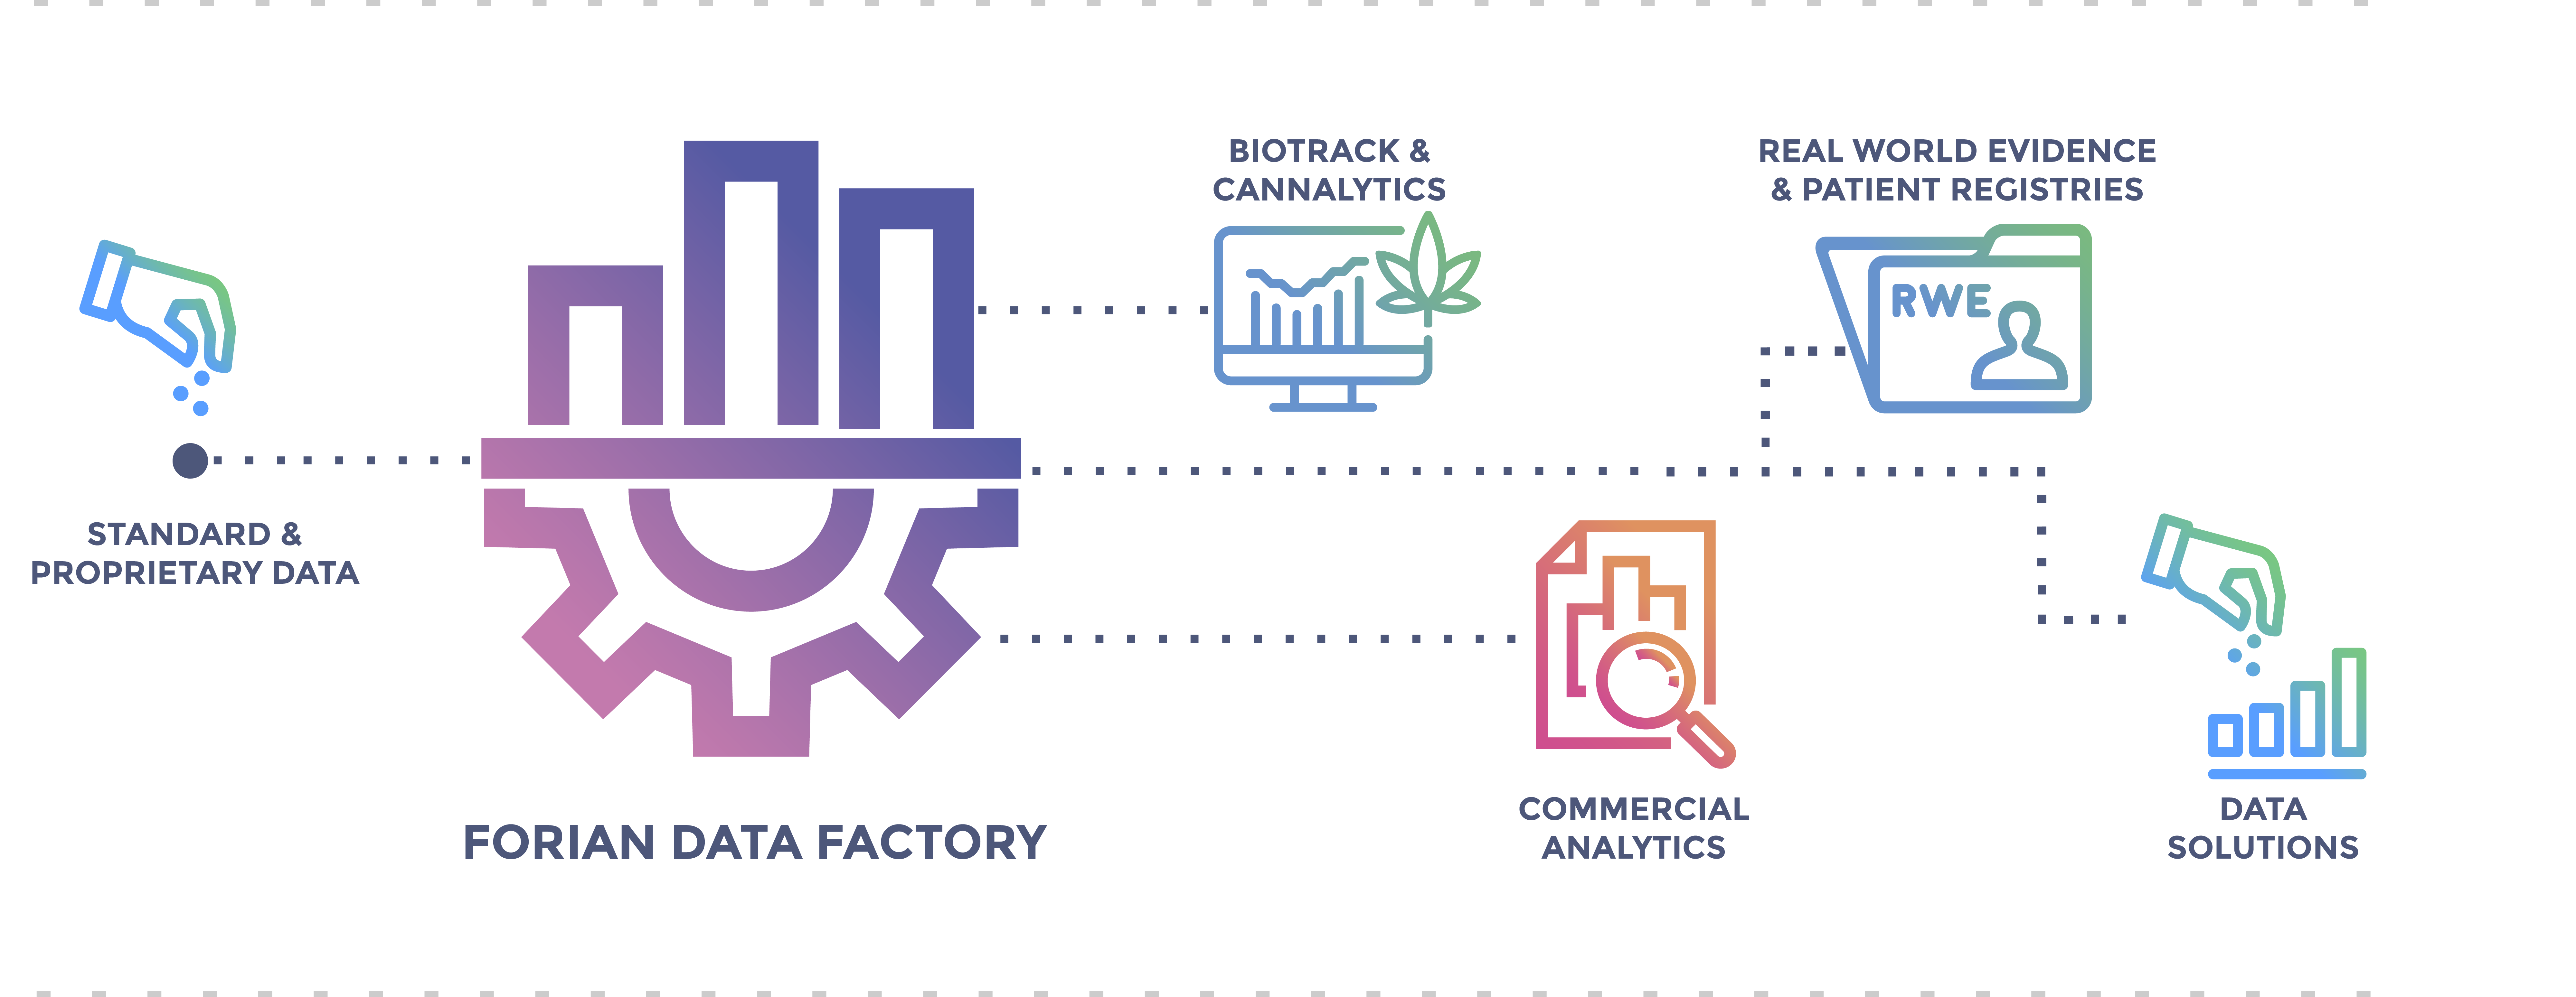 The Forian Data Factory uses standard and proprietary data to create biotrack & cannalytics, commercial analytics, real world evidence & patient registries, and data solutions.